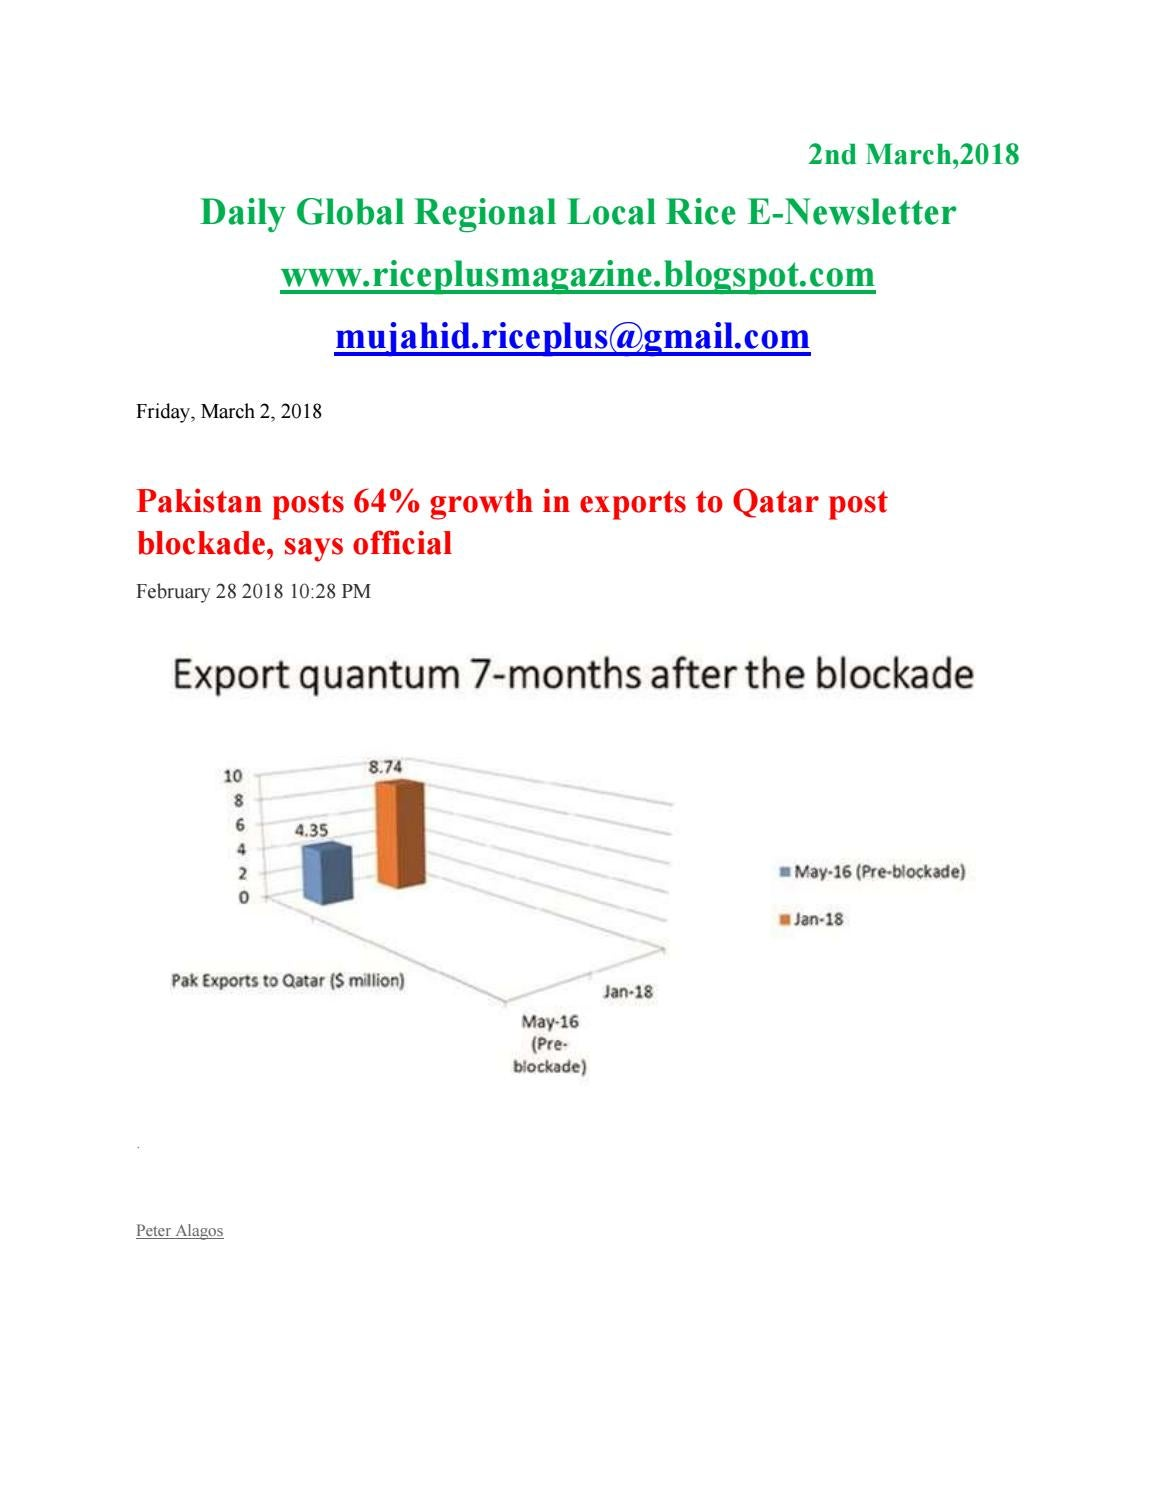 2nd march,2018 daily global regional local rice e newsletter